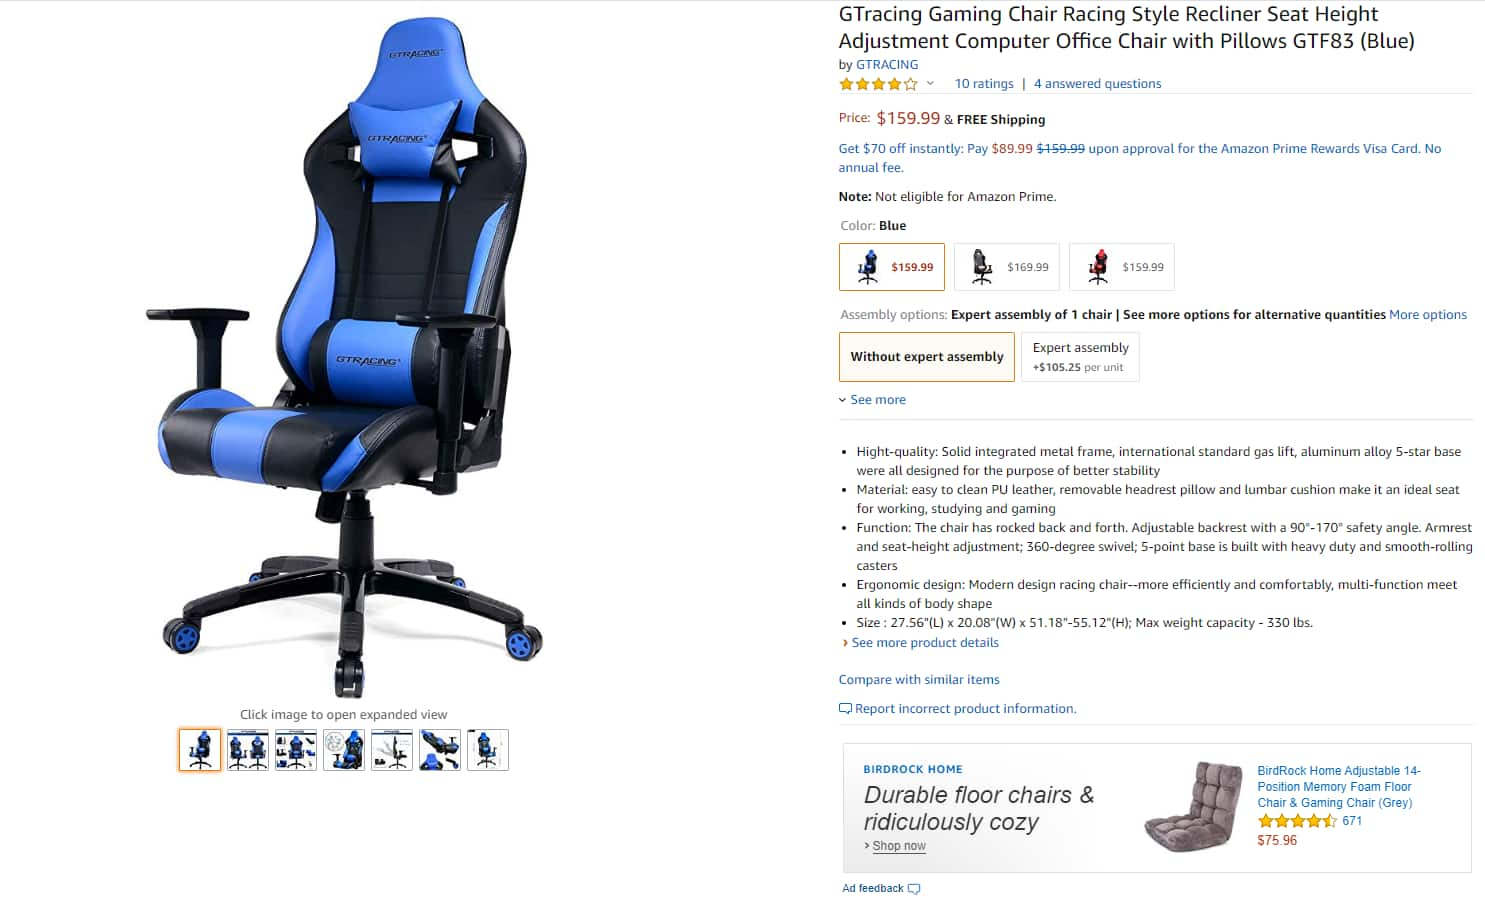 GTRacing Gaming Chair $111.99 w/ 30% off coupon